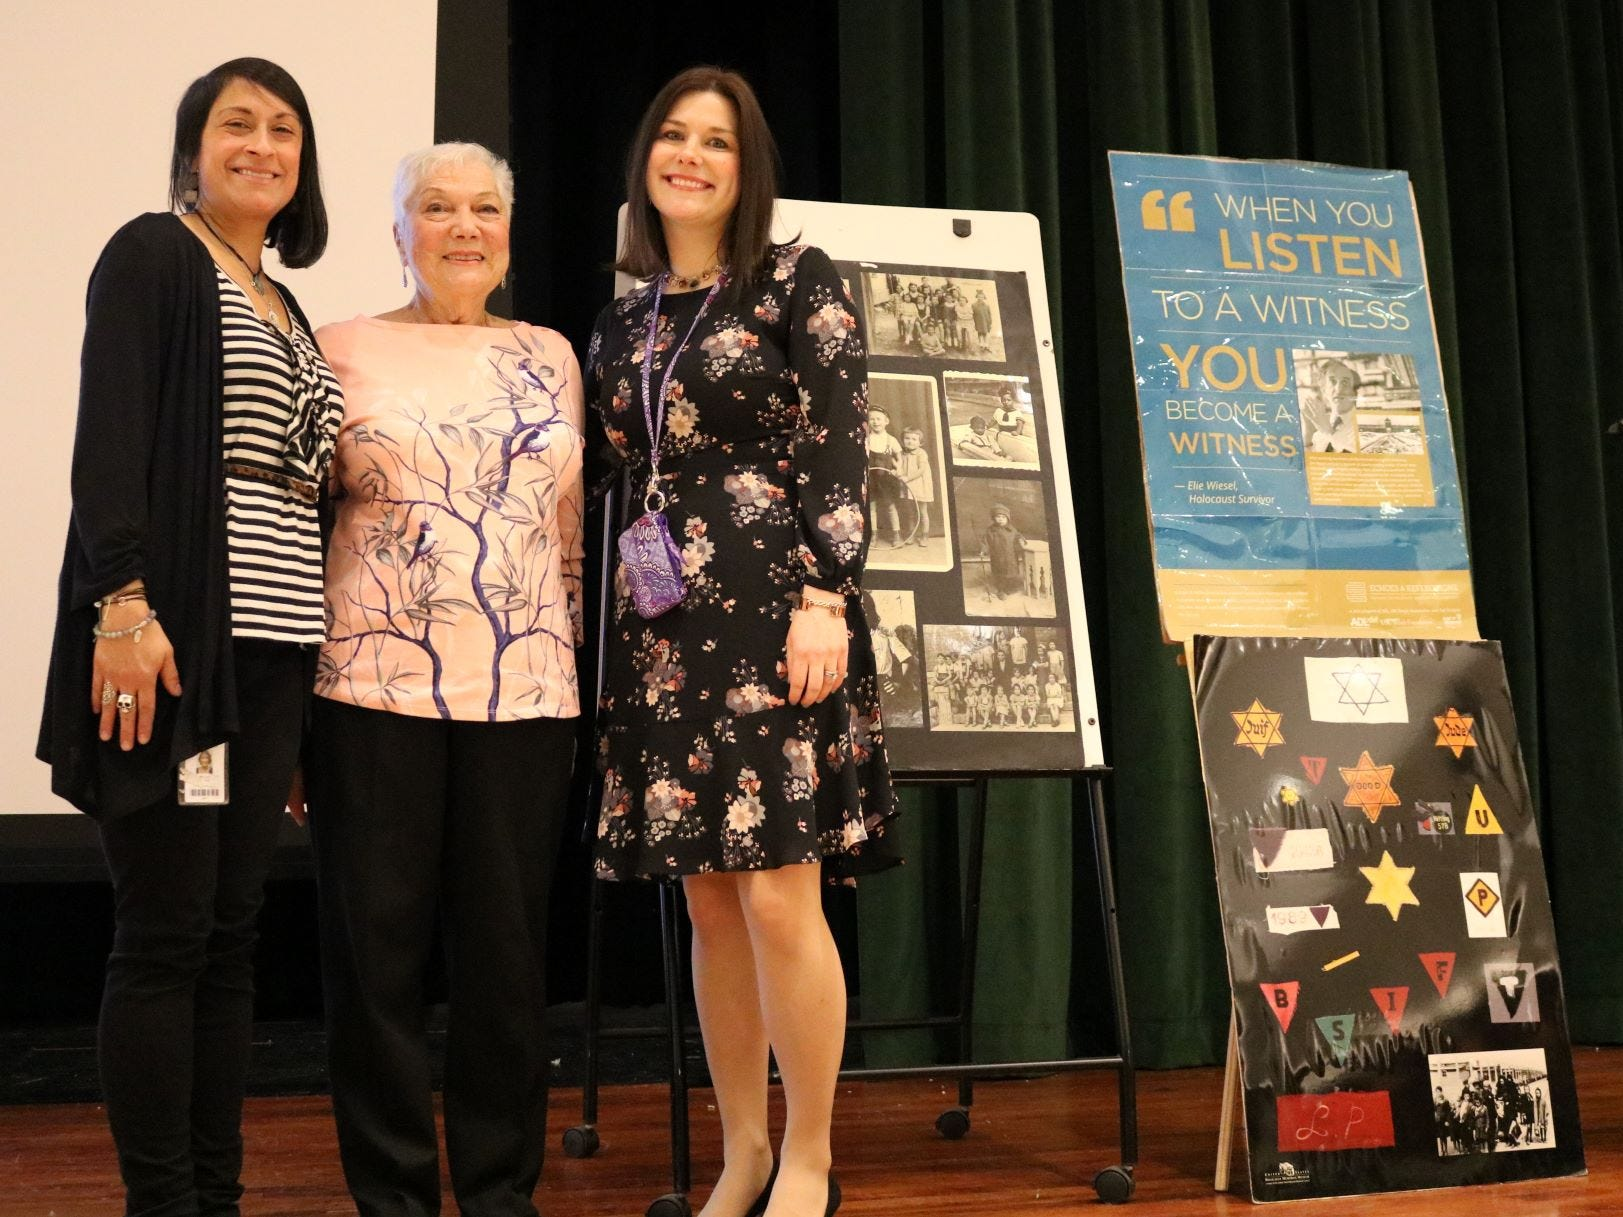 """Holocaust survivor Judith Reifer (center) poses with Edison art teacher Helen Frees (left) and social studies teacher Jacqueline Messinger following a powerful presentation about Reifer's life.  """"I think to hear from a witness, a survivor of the Holocaust, is an honored window into the deepest part of a human's soul,"""" said Frees."""